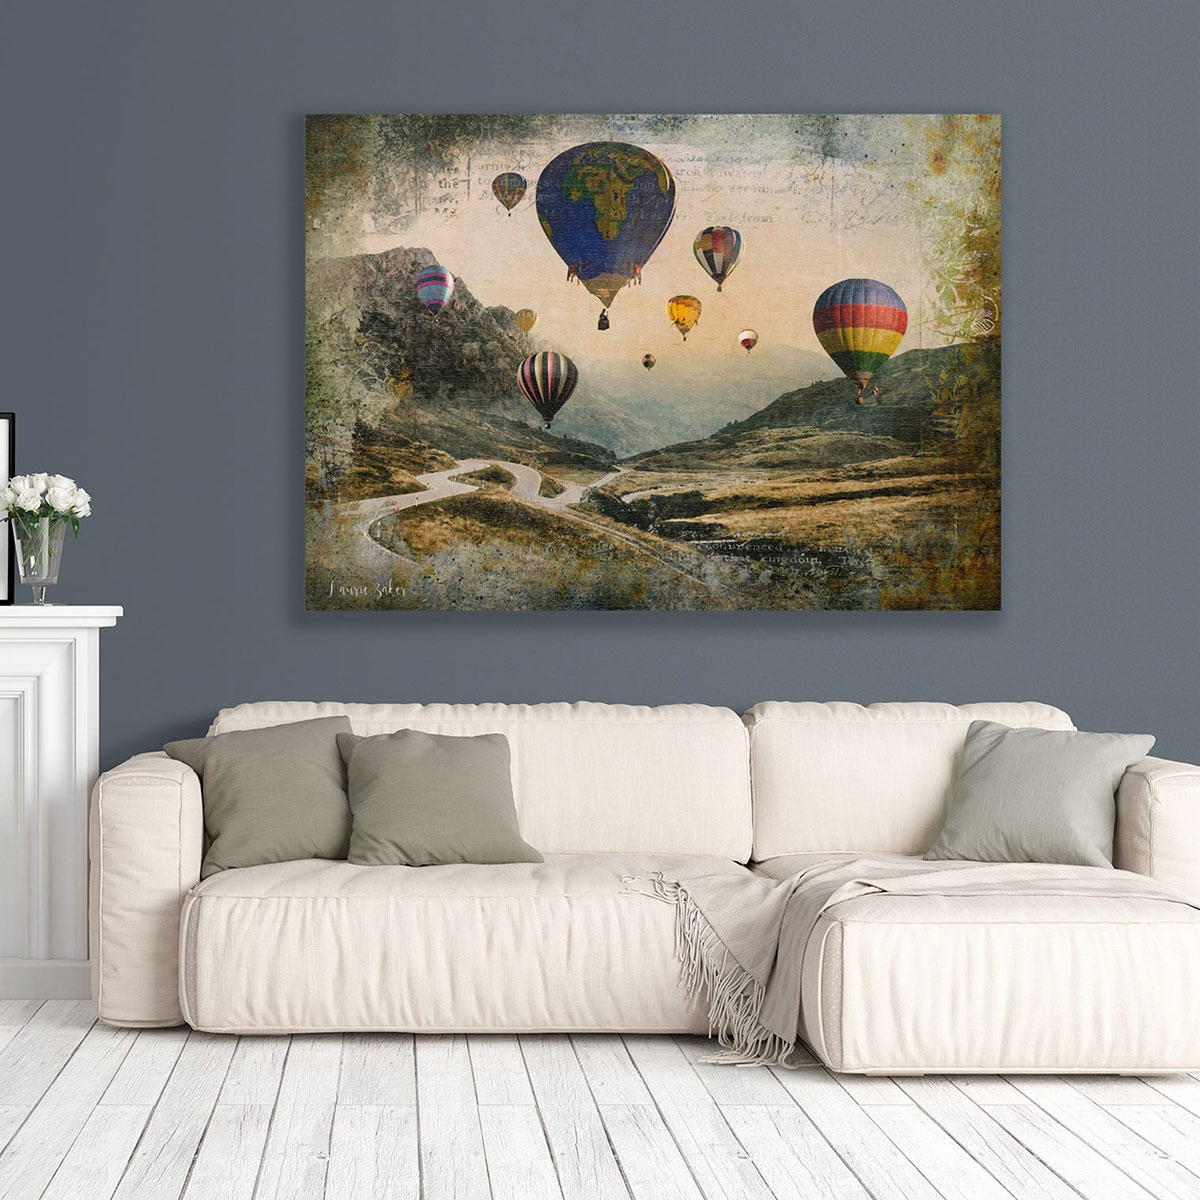 Big Canvas Prints Order Your Custom Canvas Prints Online Today Artisanhd